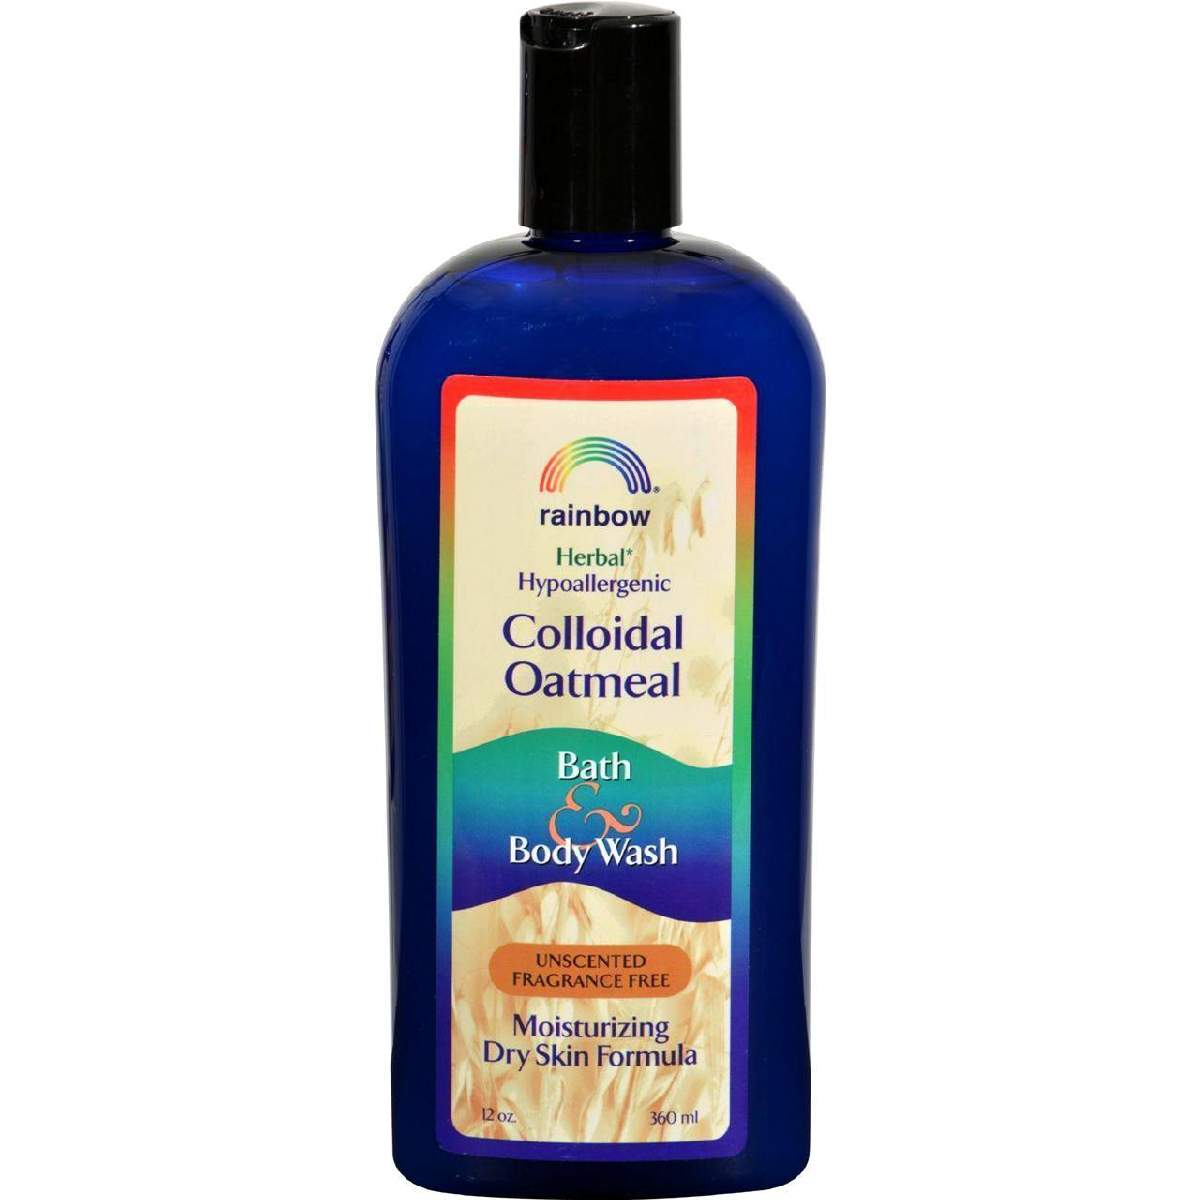 Rainbow Research Colloidal Oatmeal Bath And Body Wash - Fragrance Free - 12 Oz